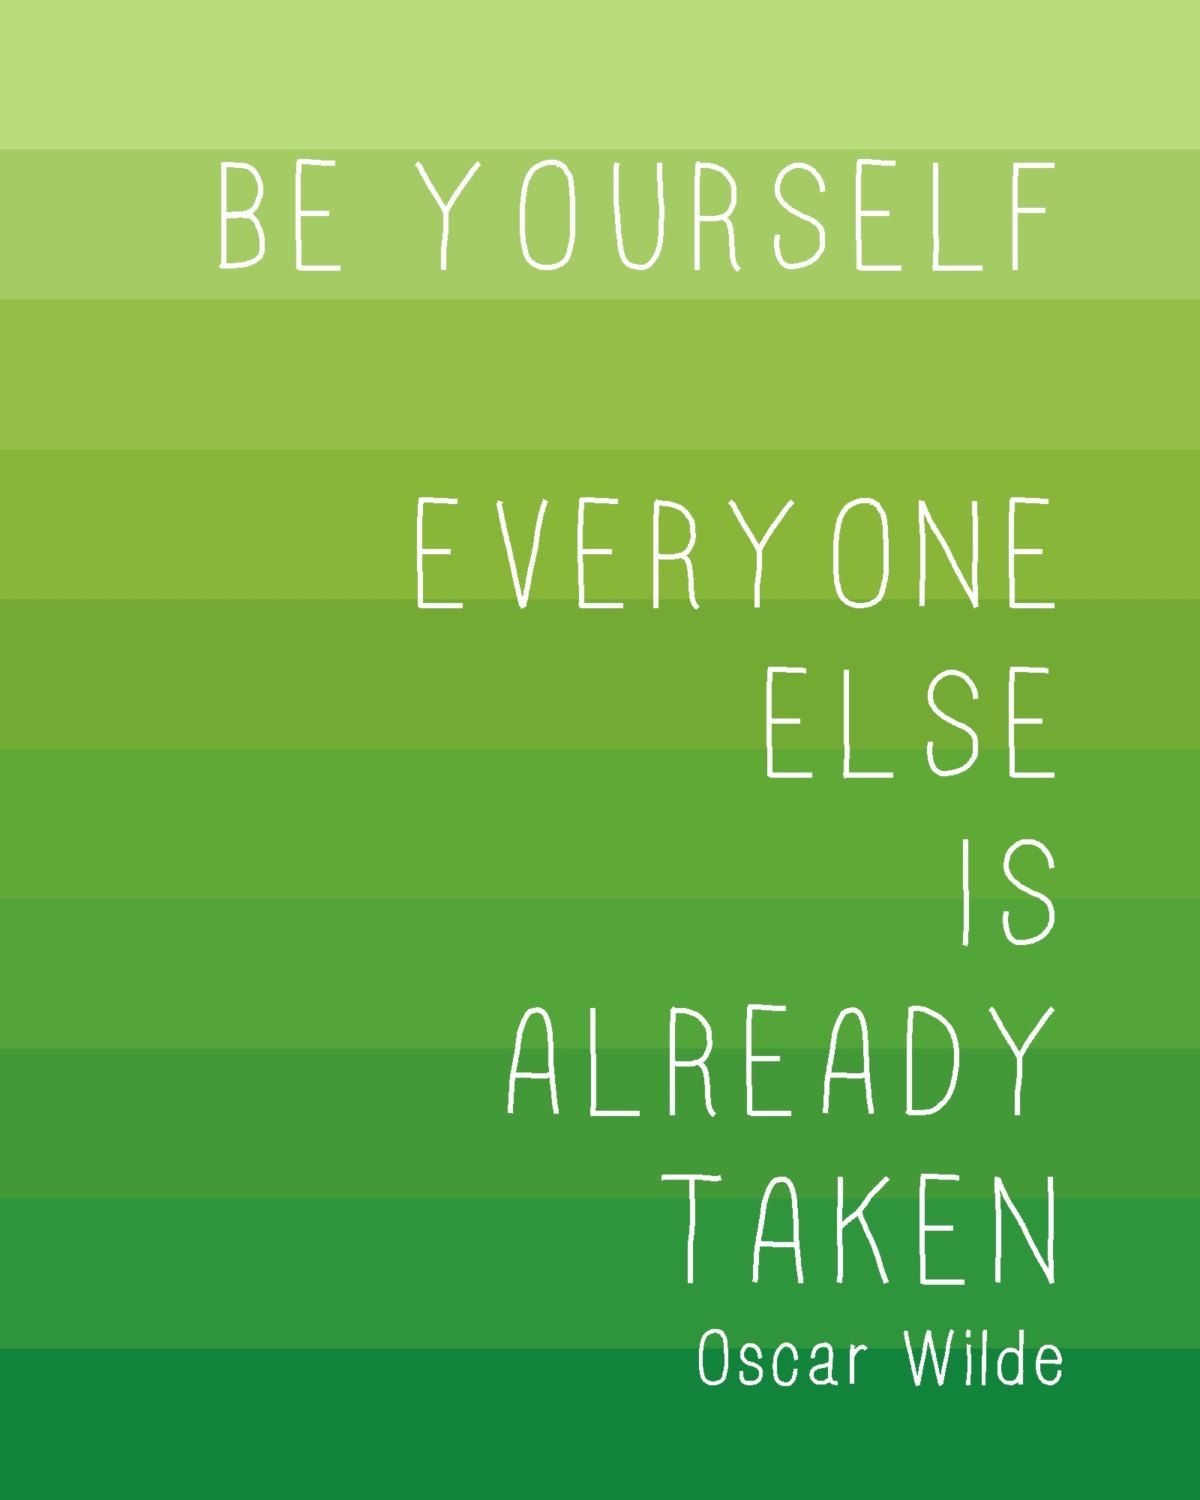 Amazing Quotes To Live By: Pin By Megan Conner On Alexis